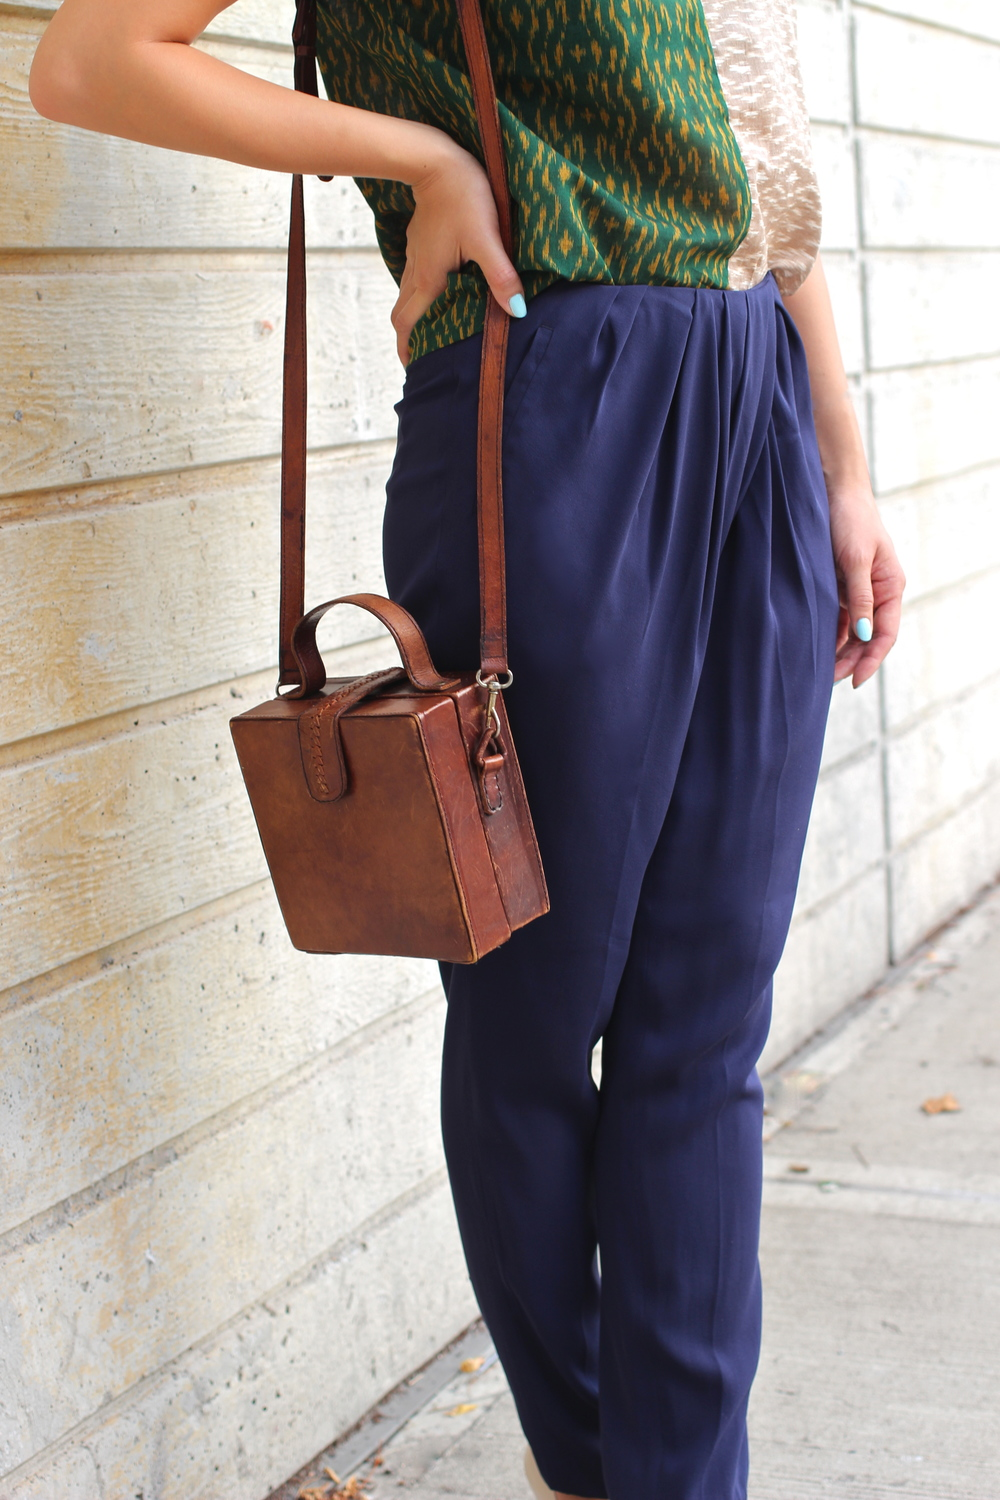 pleated_pants_vintage_leather_bag.jpg